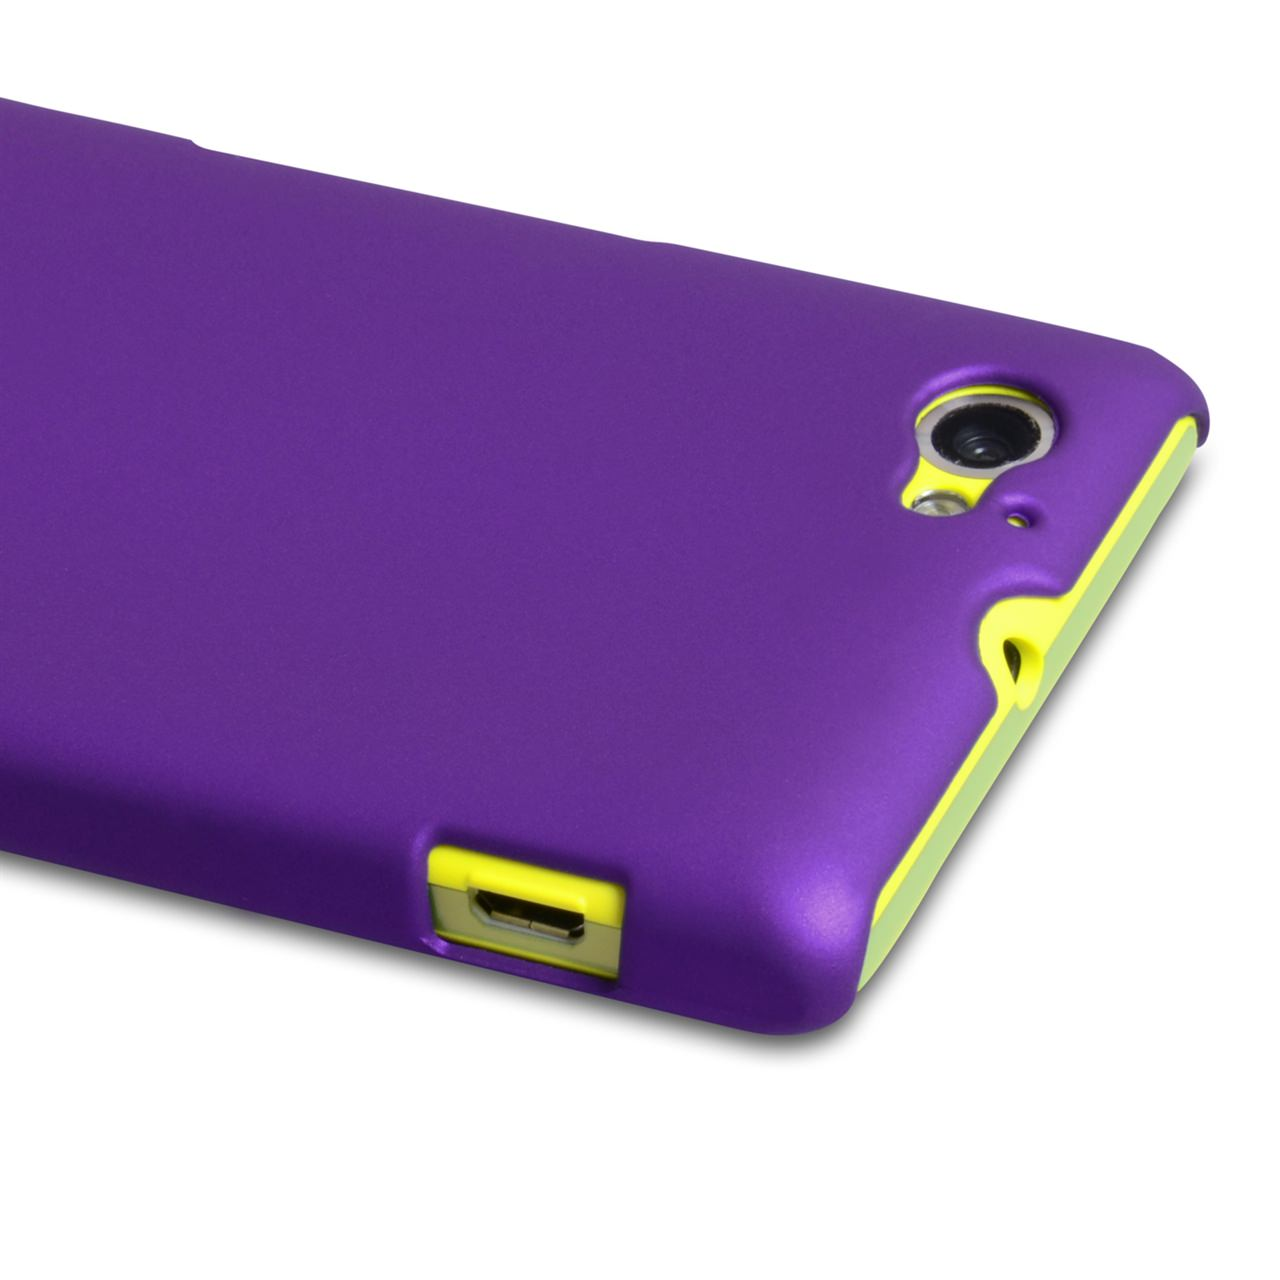 YouSave Accessories Sony Xperia M Hard Hybrid Case - Purple